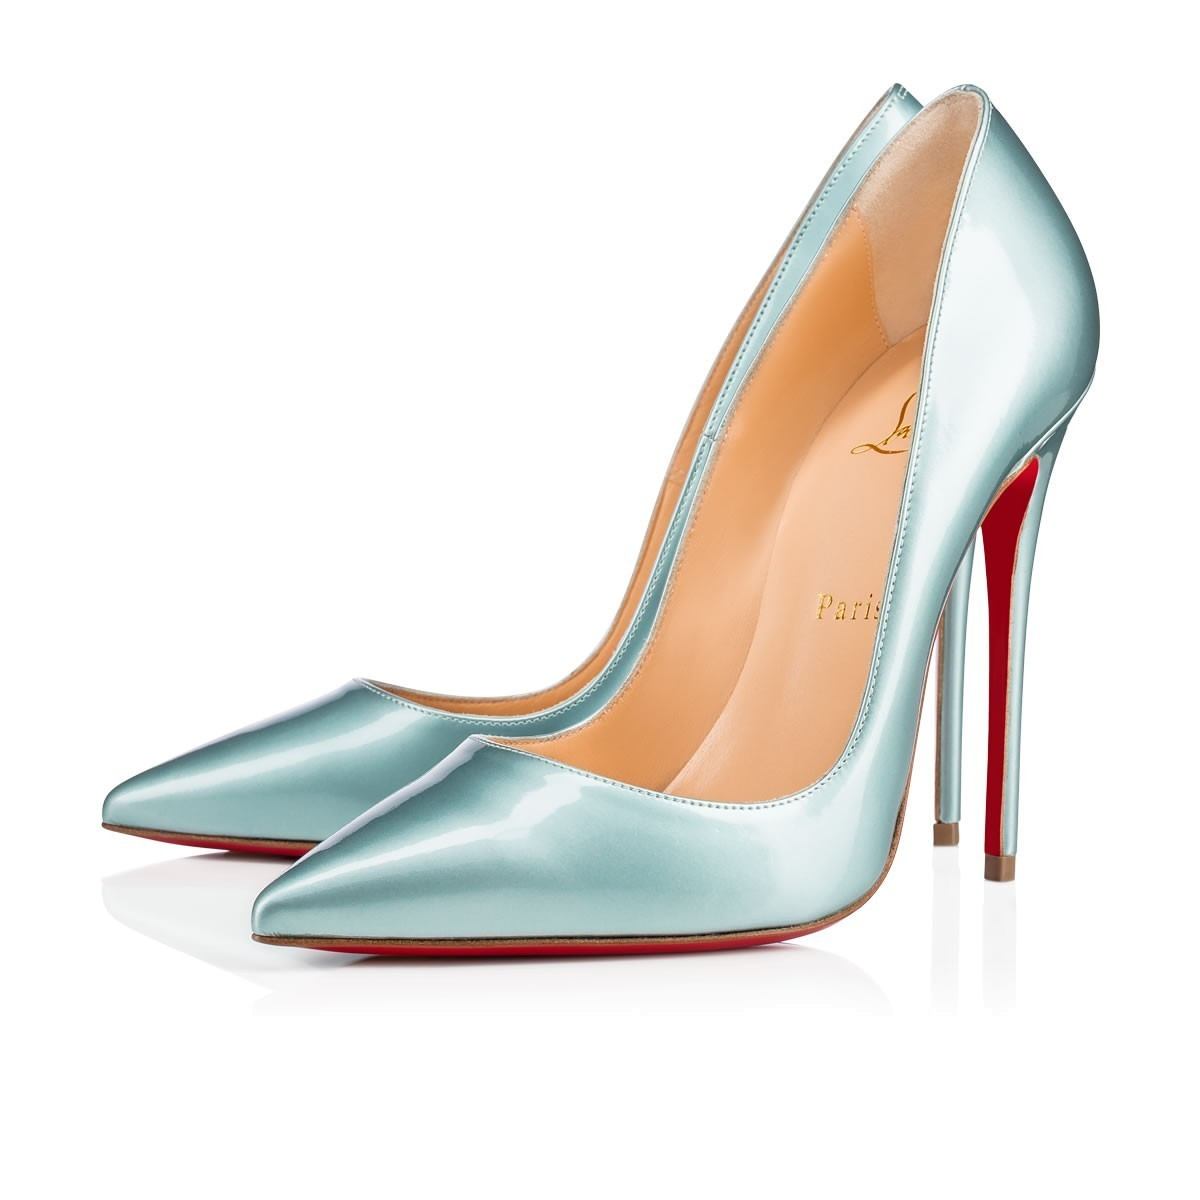 《Christian Louboutin》SO KATE VERNIS SATIN  パンプス 120mm